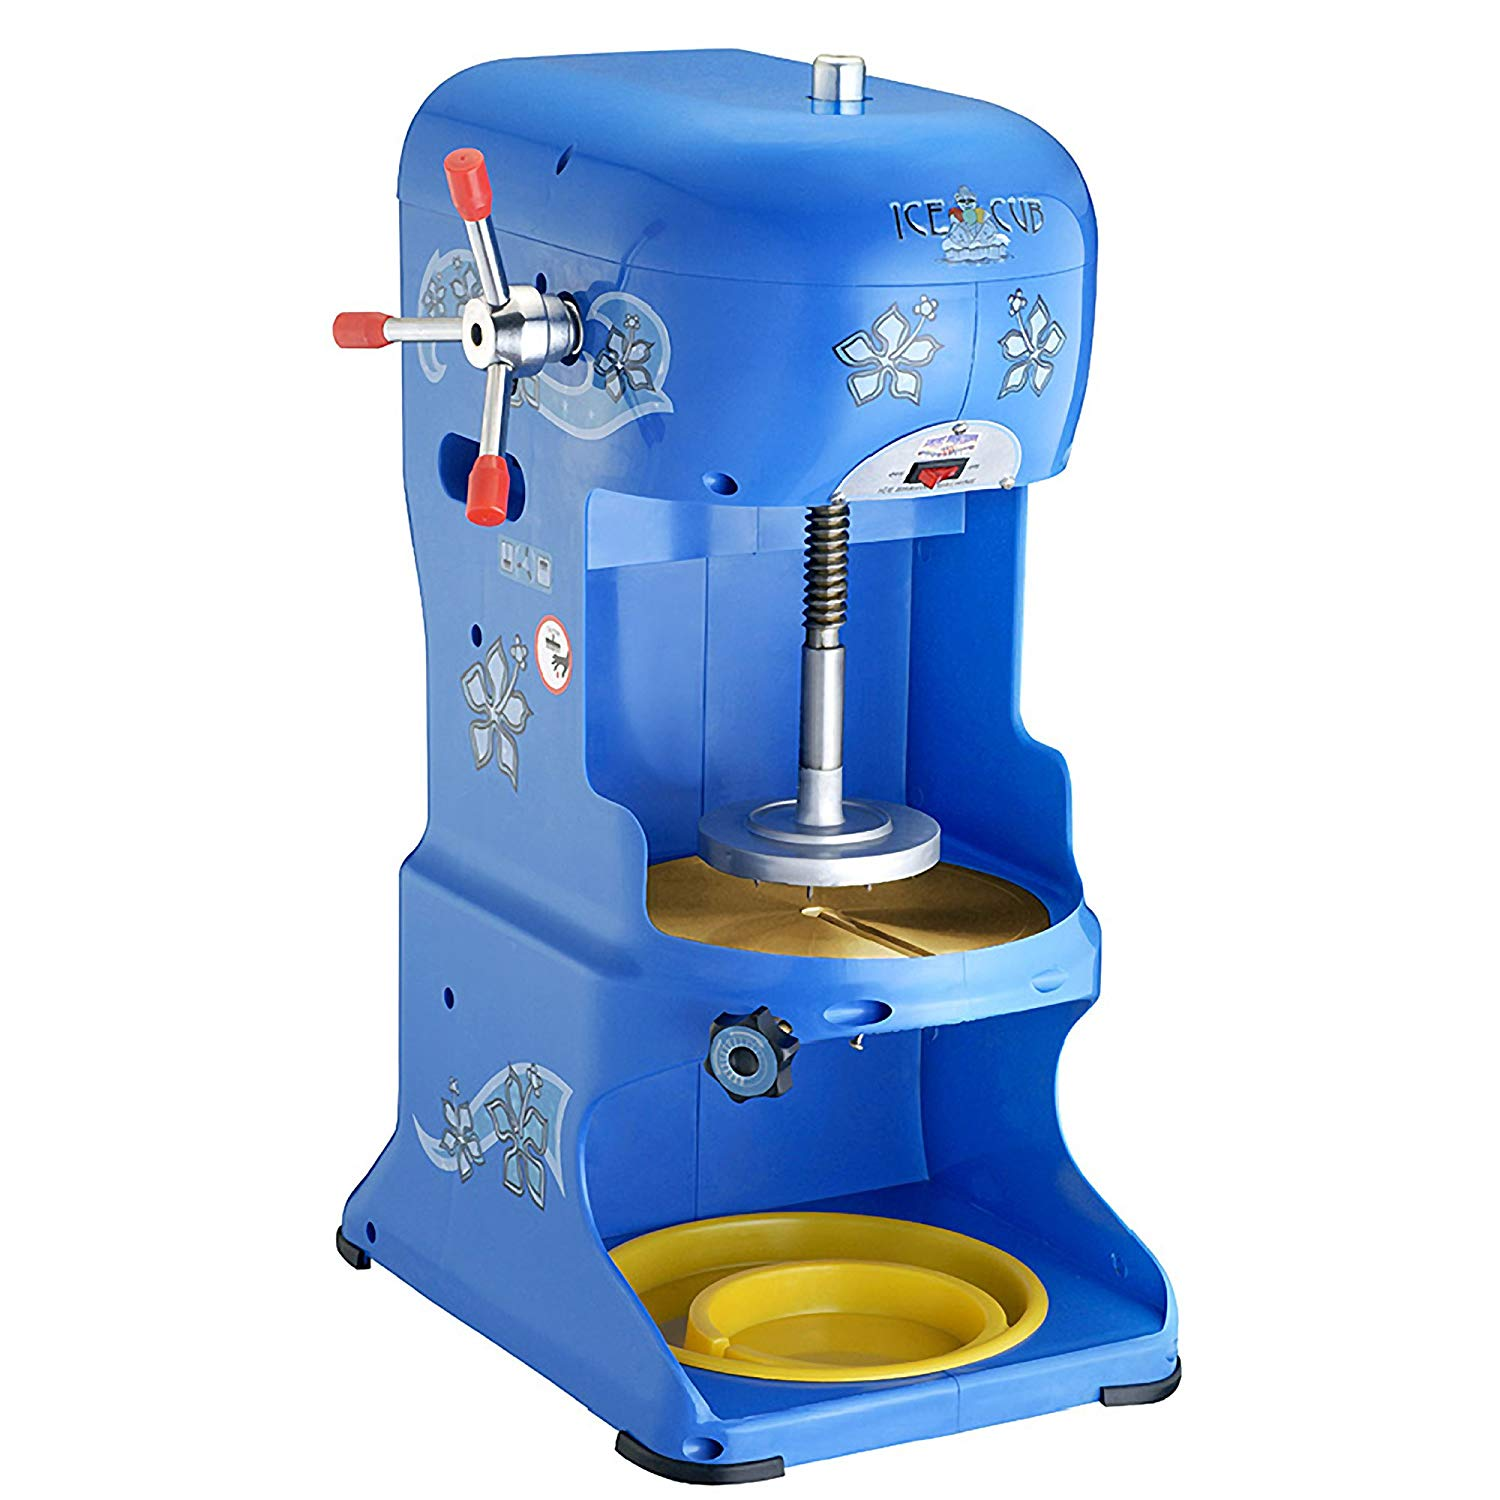 Great Northern Premium Quality Ice Cub Shaved Ice Machine Commercial Ice Shaver